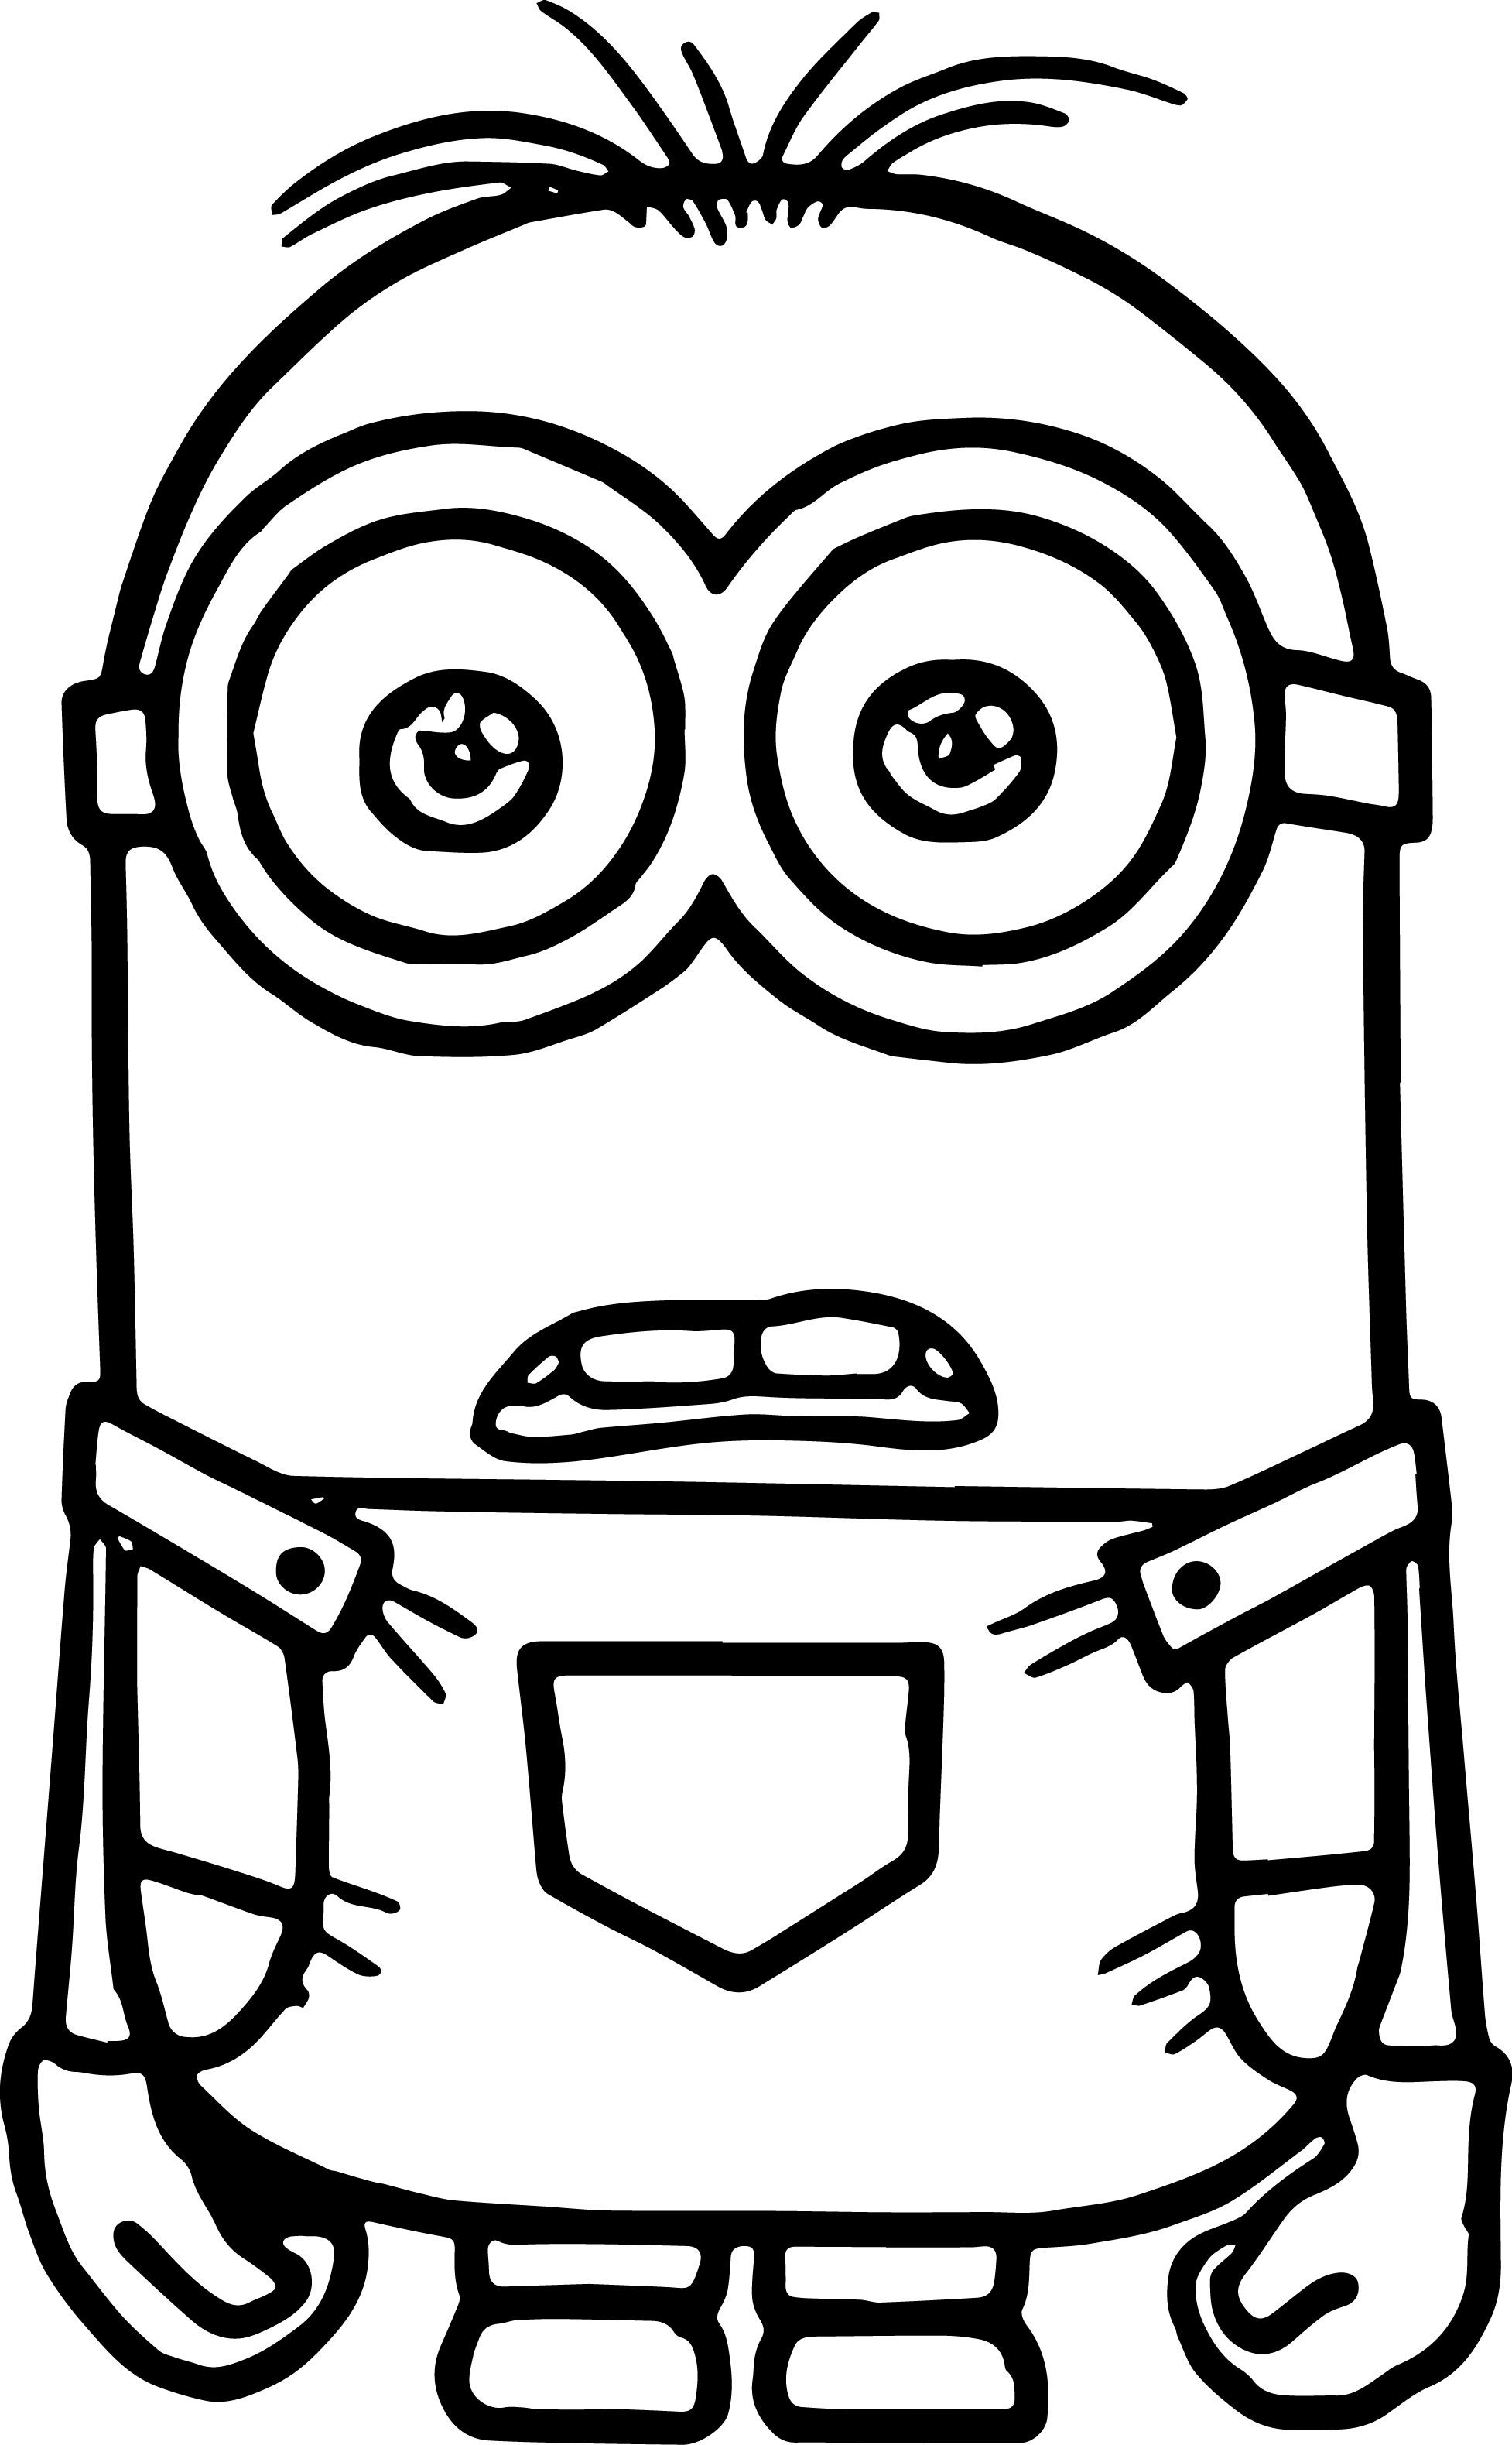 Minions Coloring Pages Wecoloringpage Minion Coloring Pages Disney Coloring Pages Minions Coloring Pages